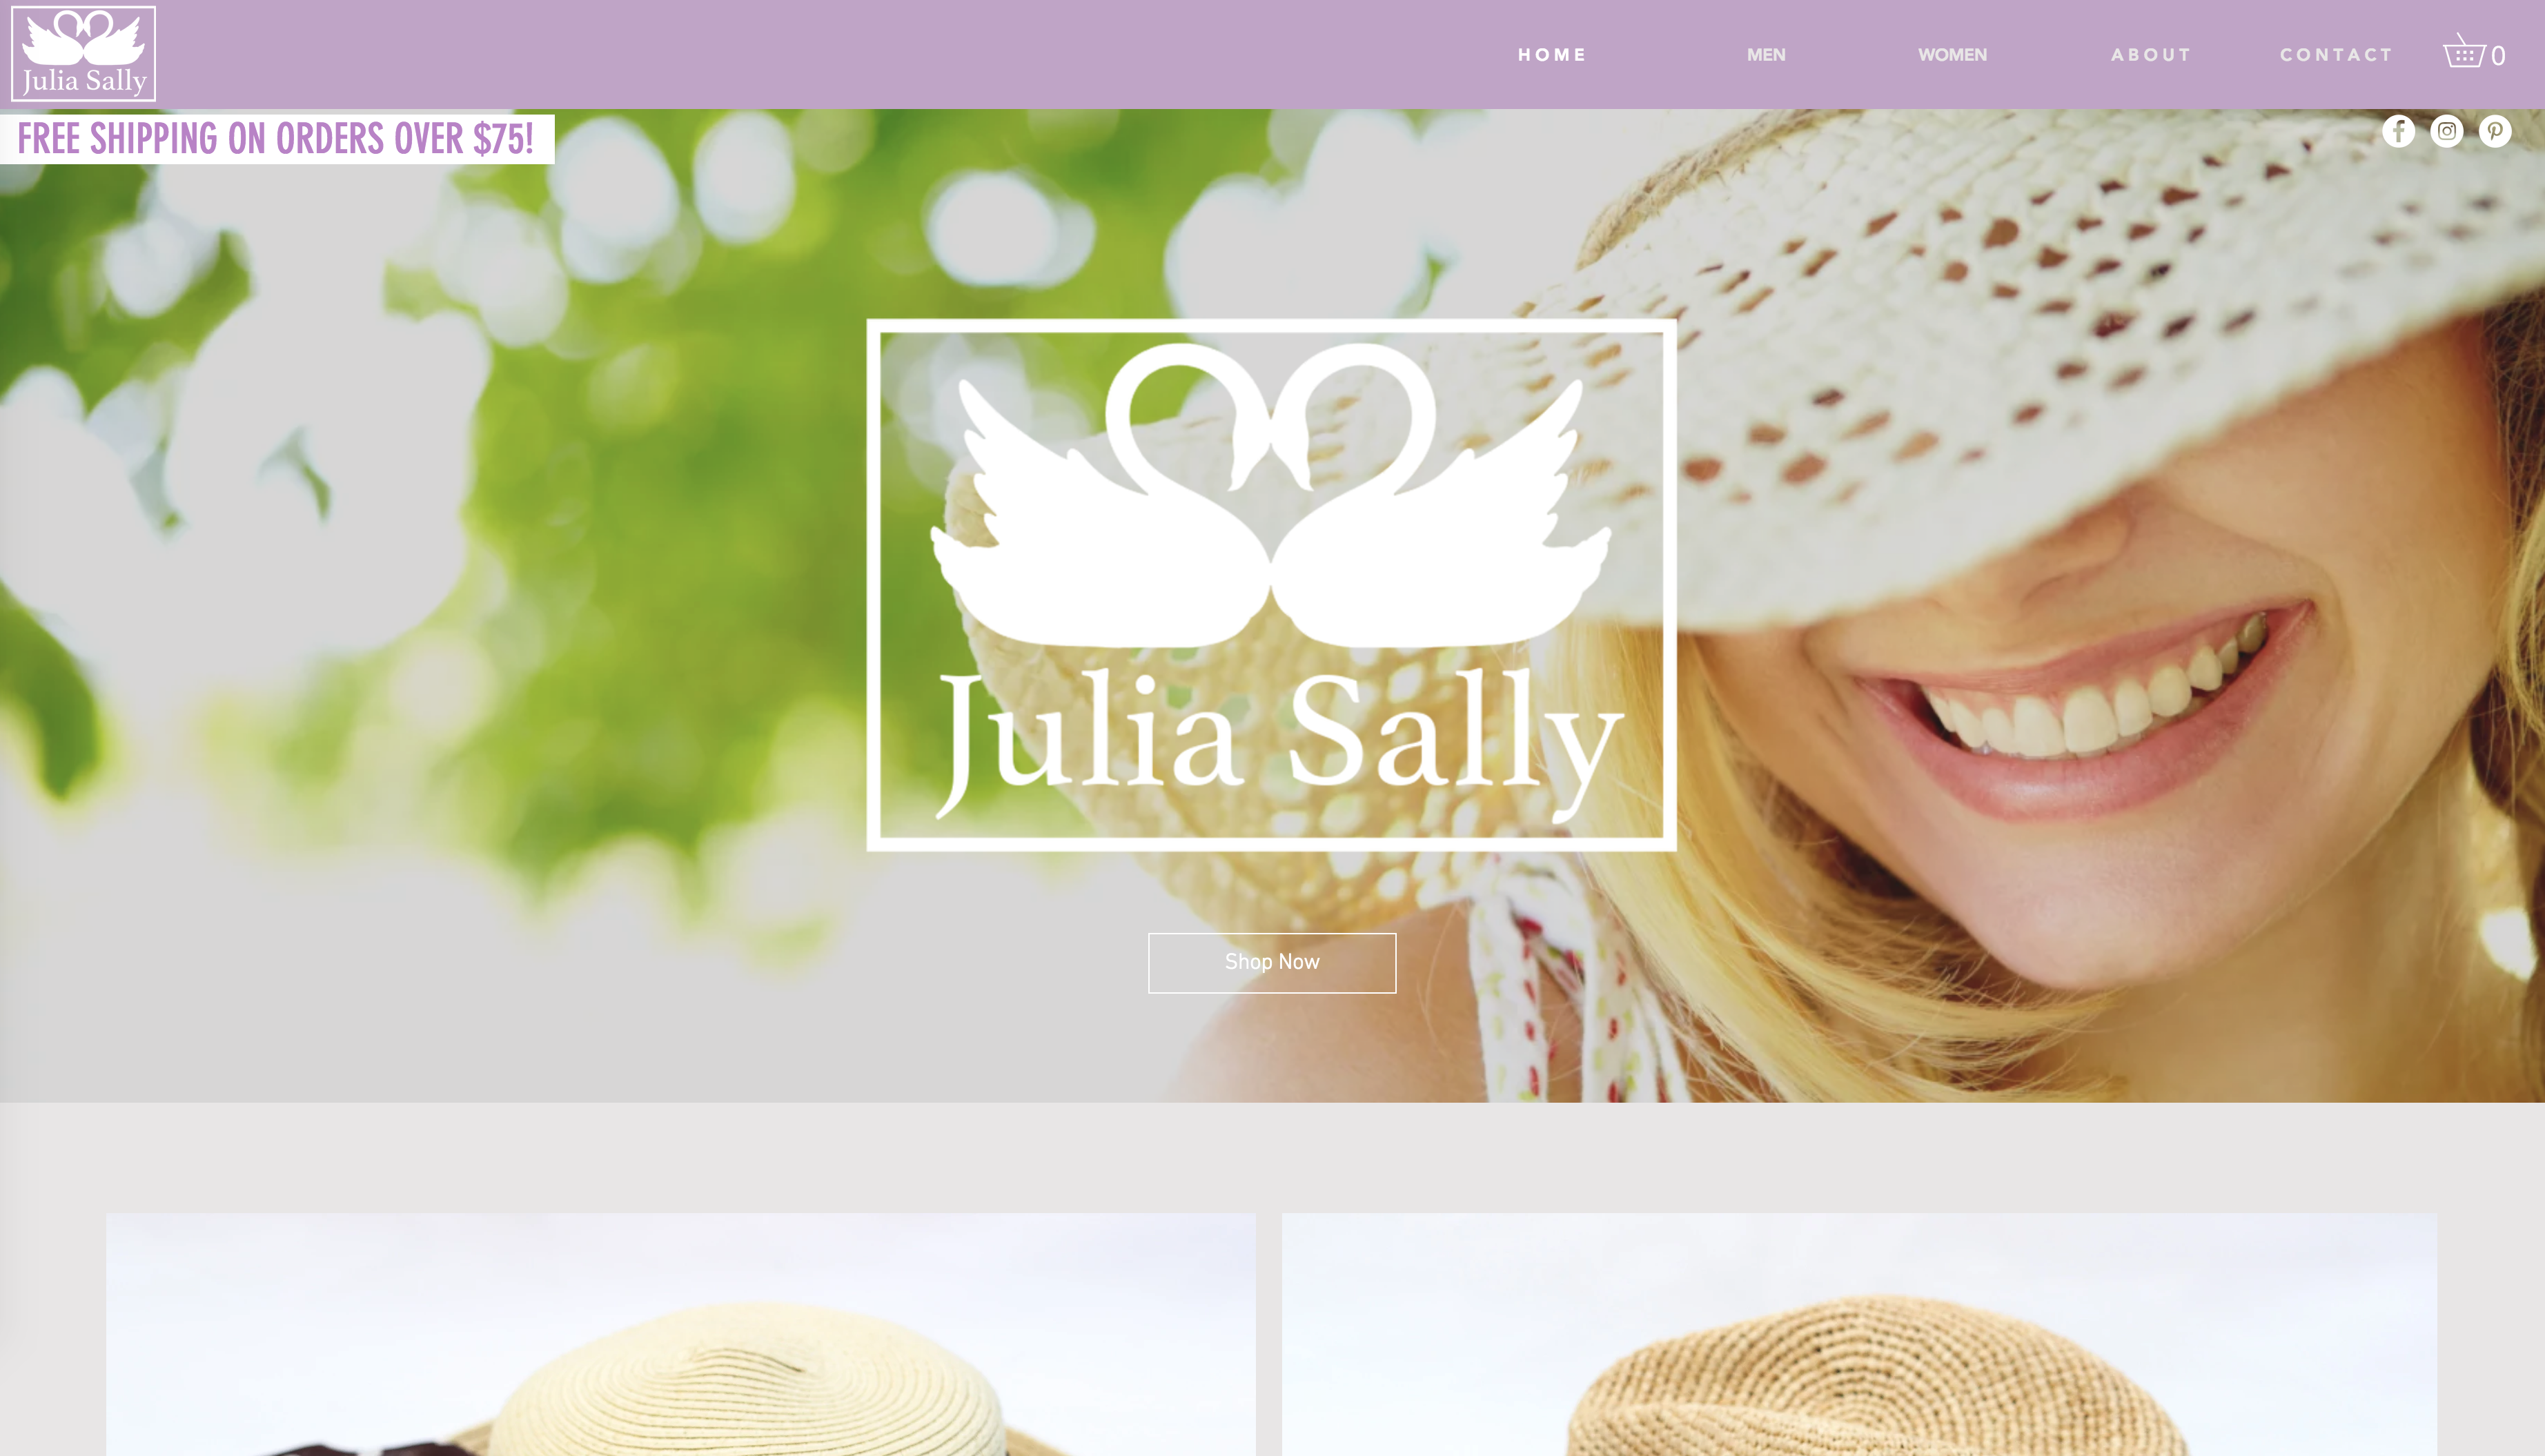 juliasally.com